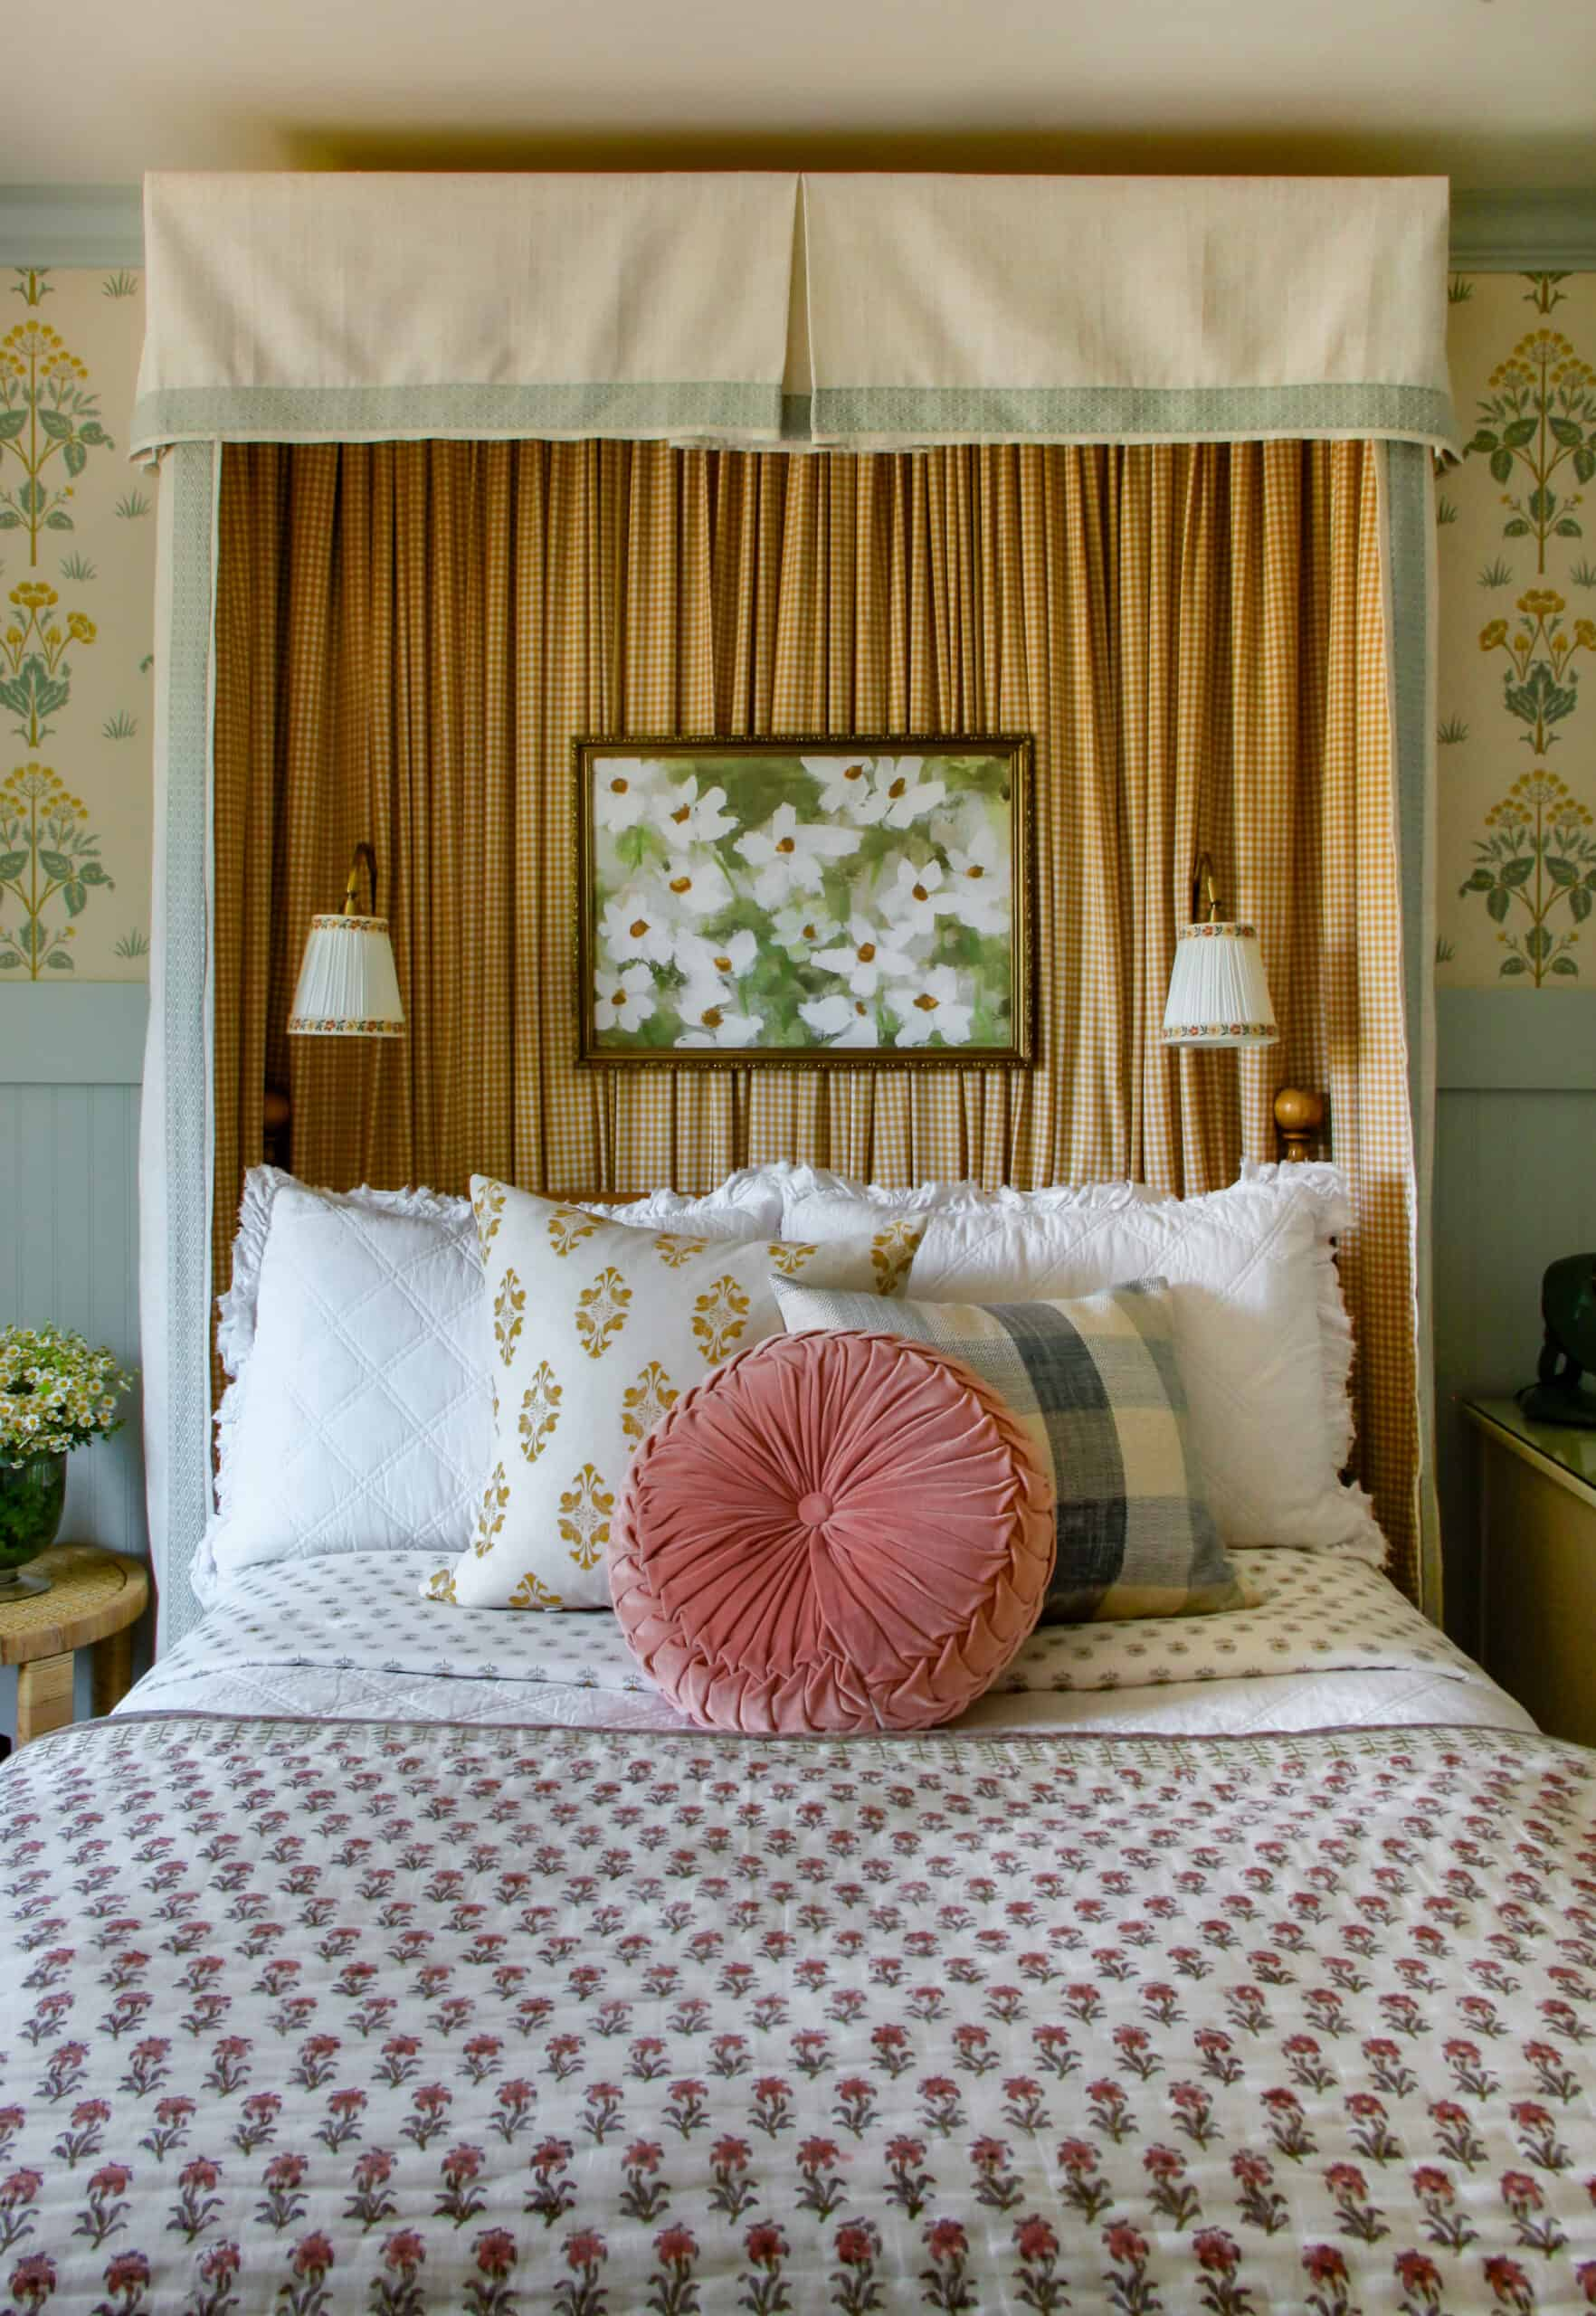 straight on photo of girl's bedroom with headboard canopy